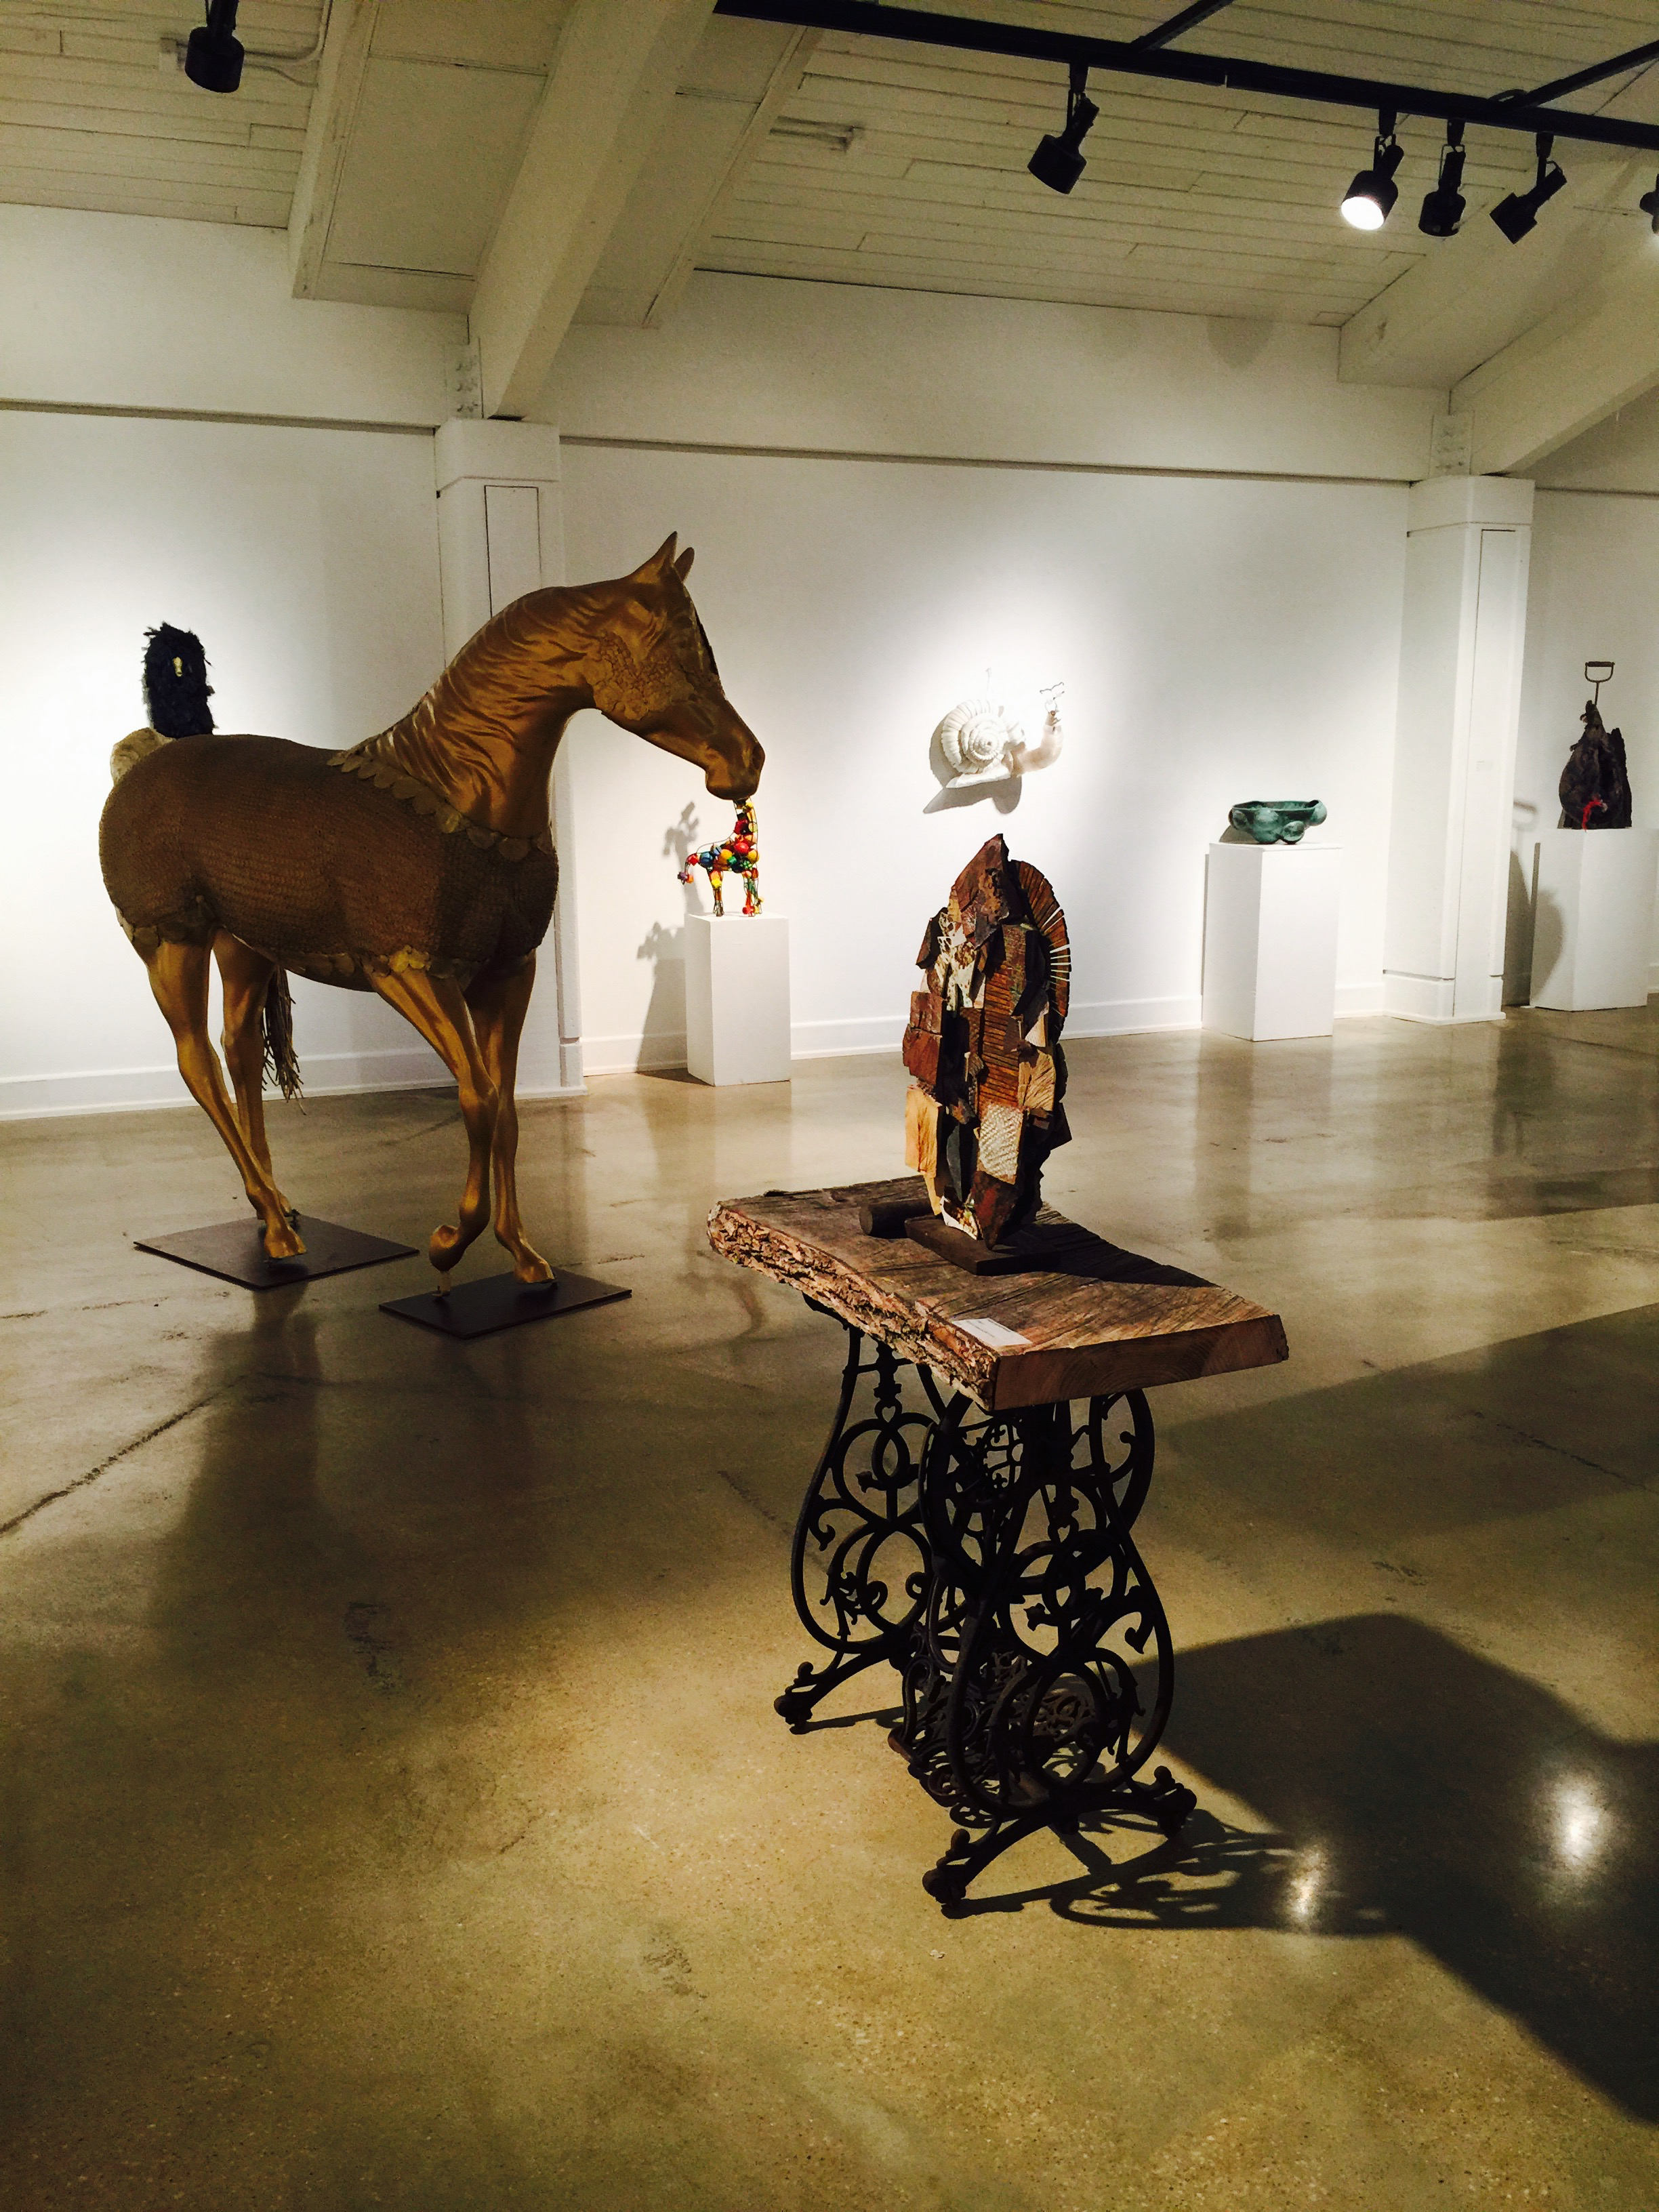 """HELIOS HORSE"" (LEFT) MIXED MEDIA MOSAIC ON FIBERGLASS BY SHELITA BIRCHETT BENASH OPENING RECEPTION JUNE 28, 2015  ""CONJURE"" (RIGHT) HIGH FIRE CERAMIC MIXED MEDIA MOSAIC SCULPTURE BY SHELITA BIRCHETT BENASH WITH RECYCLED ART TABLE BY RICHARD BENASH"